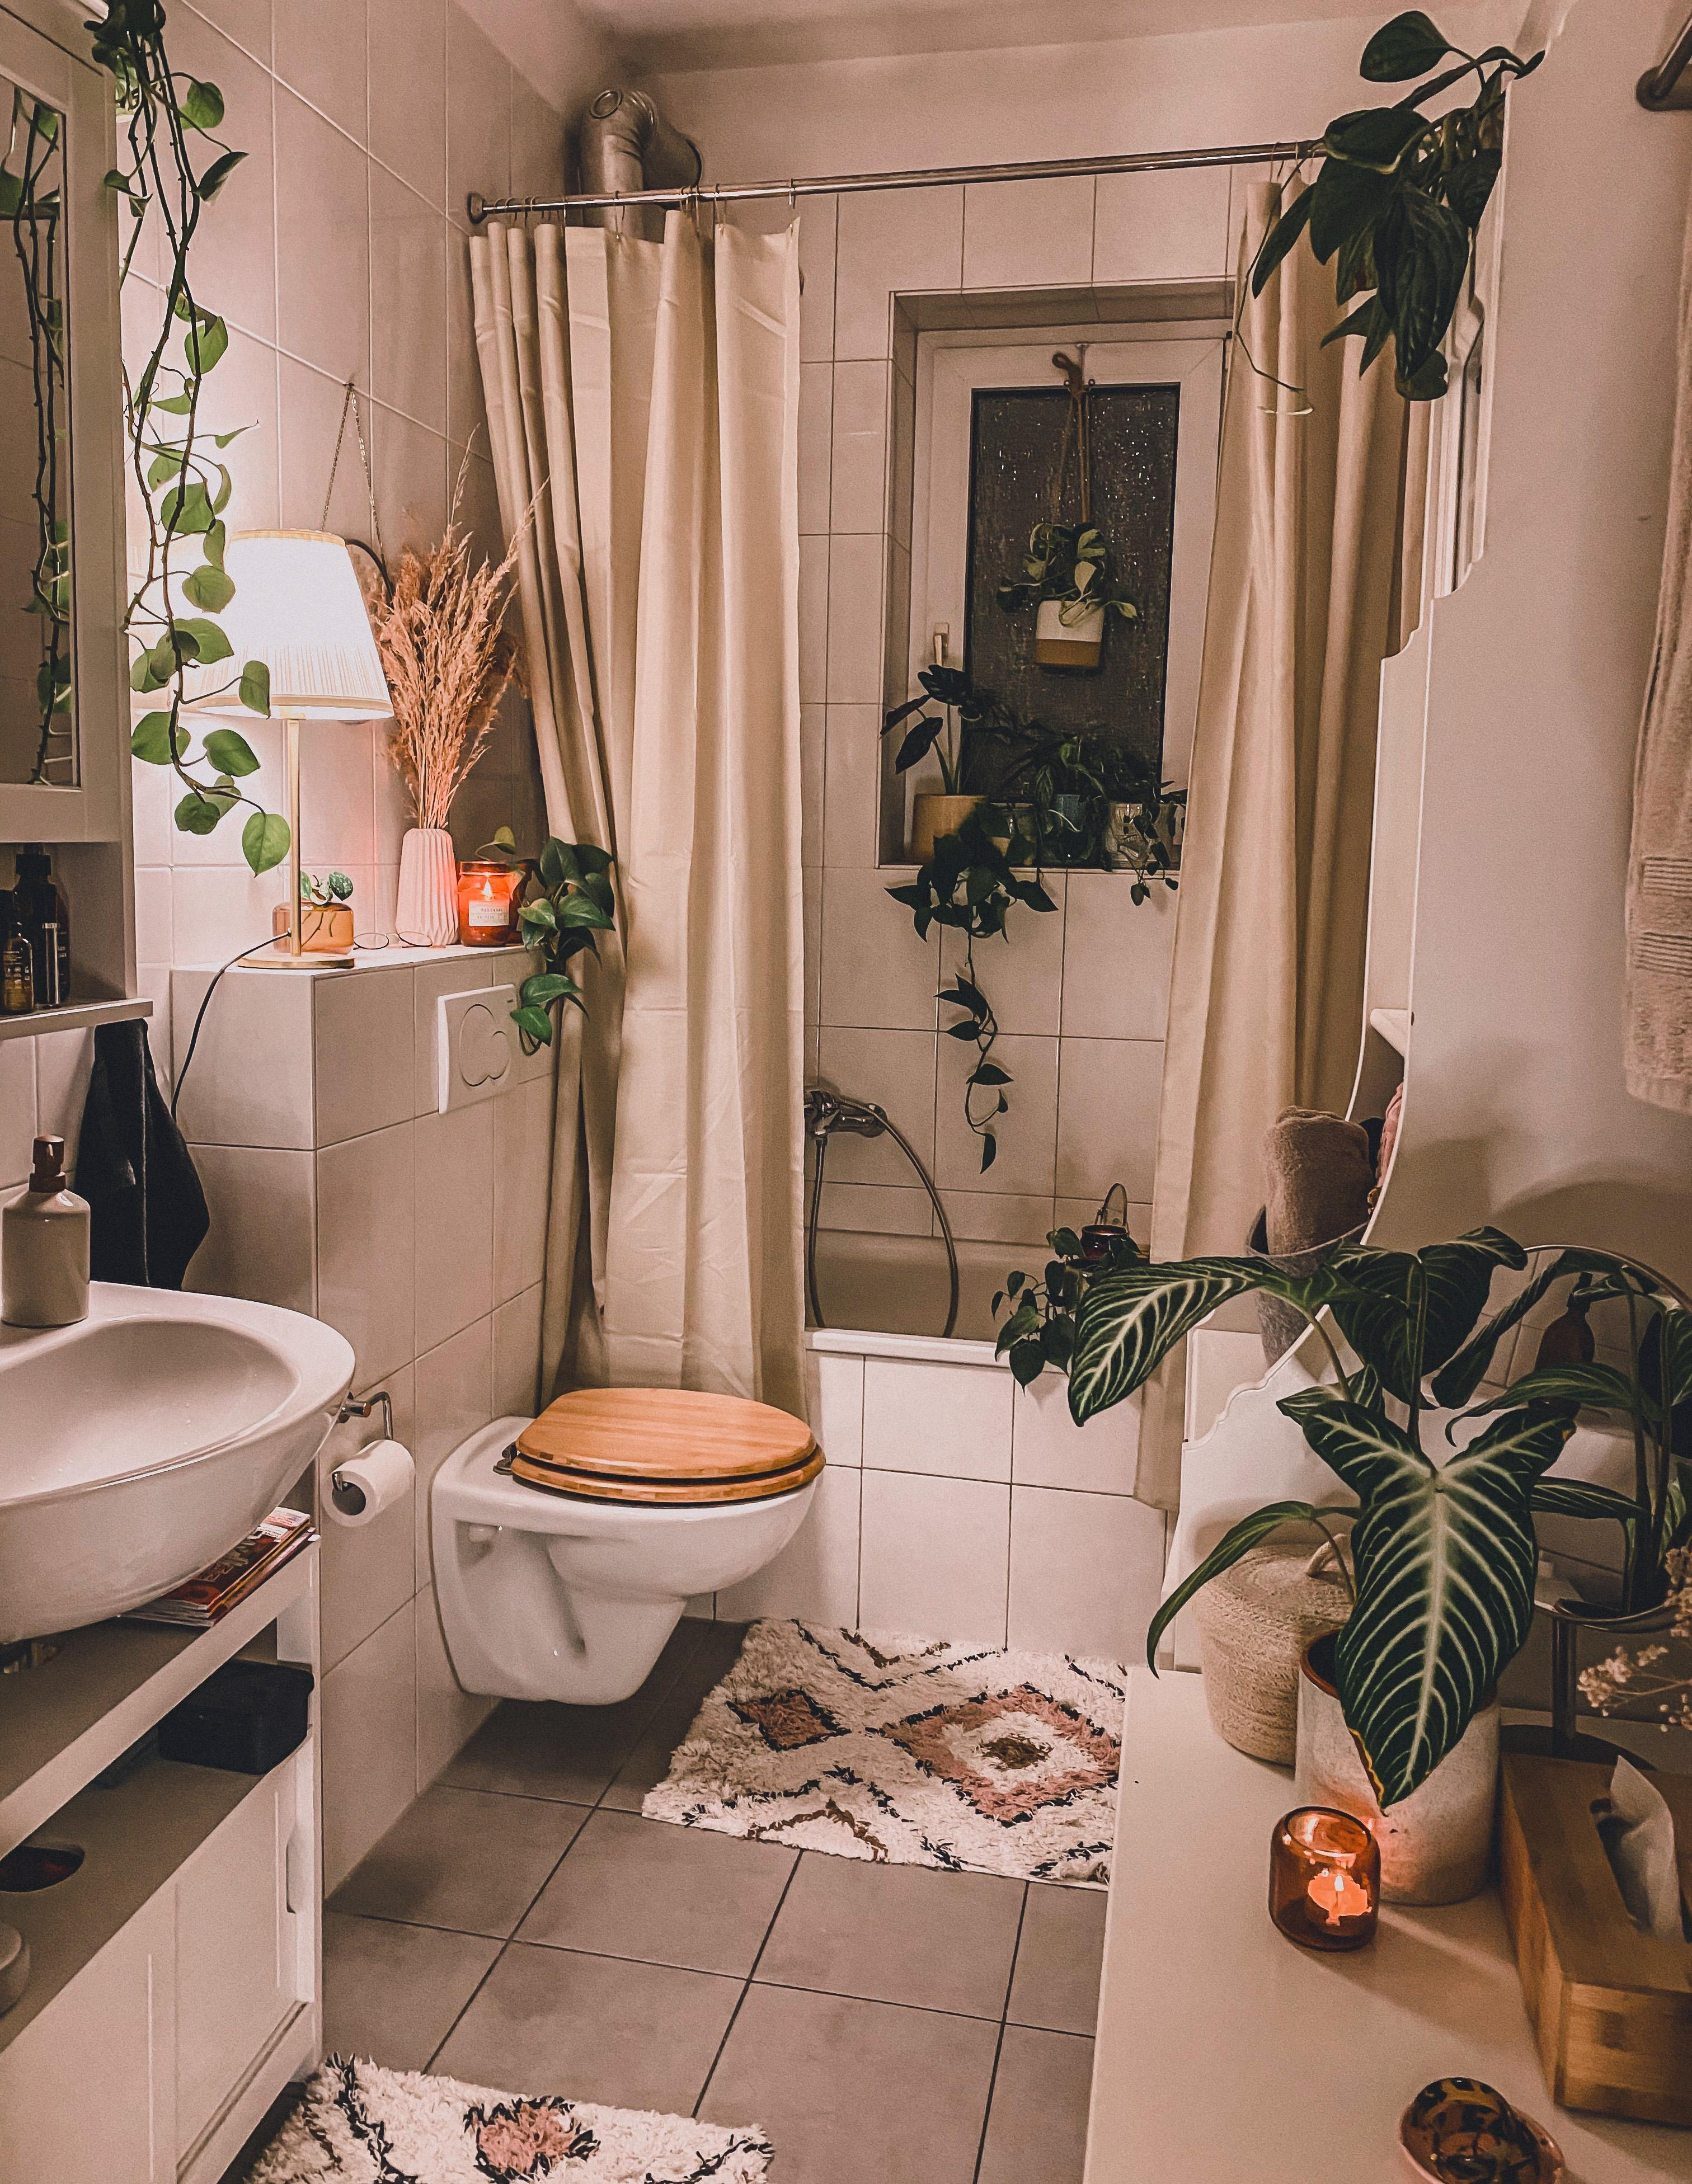 Liebs auch im Bad cozy #bathroom #interior #decoration